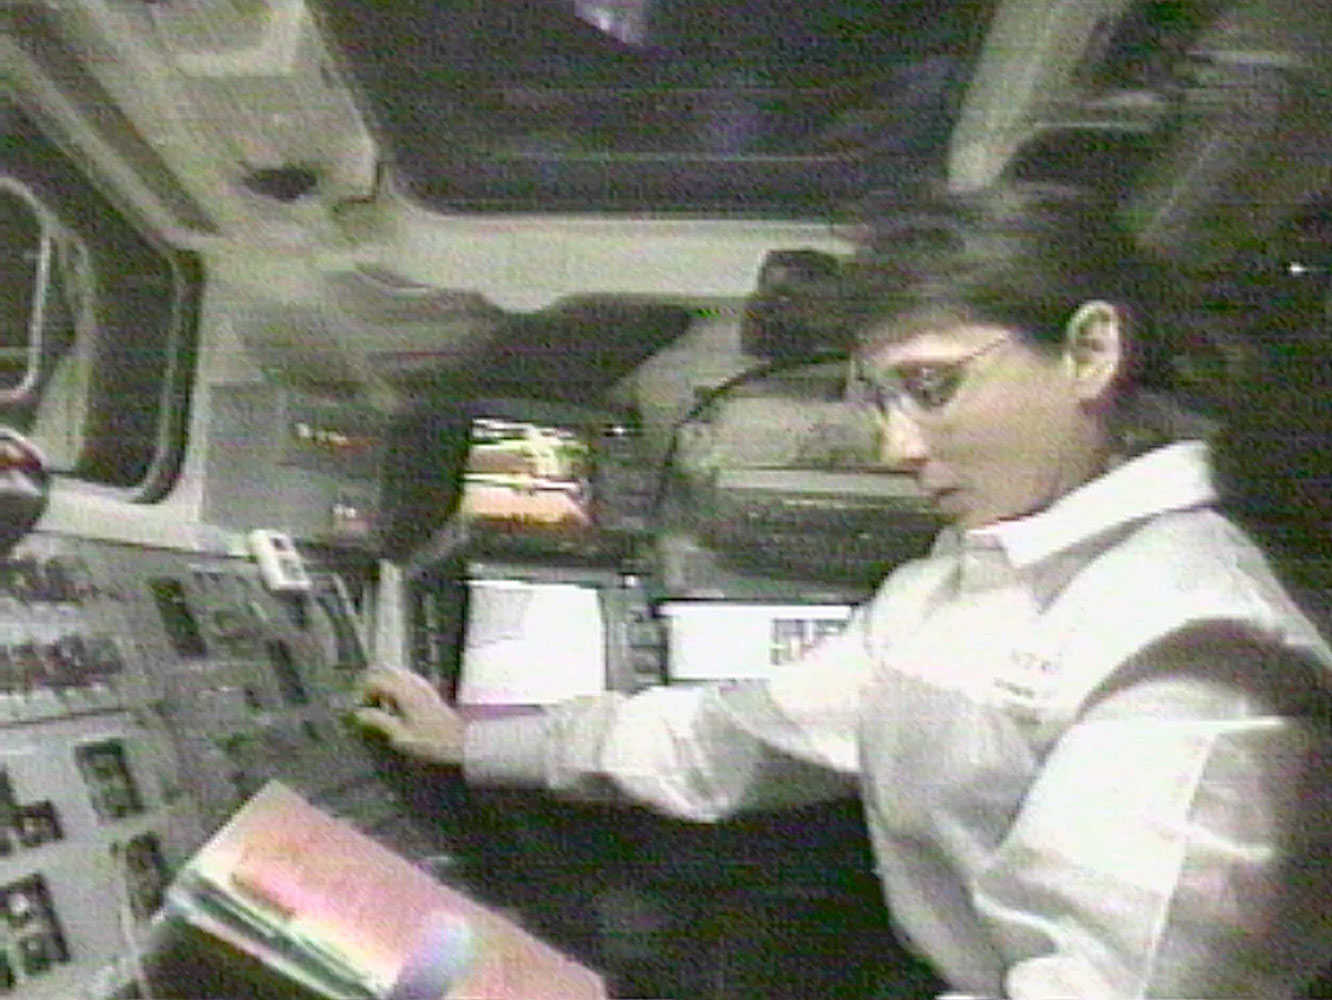 NASA Astronaut Nancy Currie reads a manual as she grapples an arriving space station module, in the cargo bay of the Endeavour, on Dec. 6, 1998.